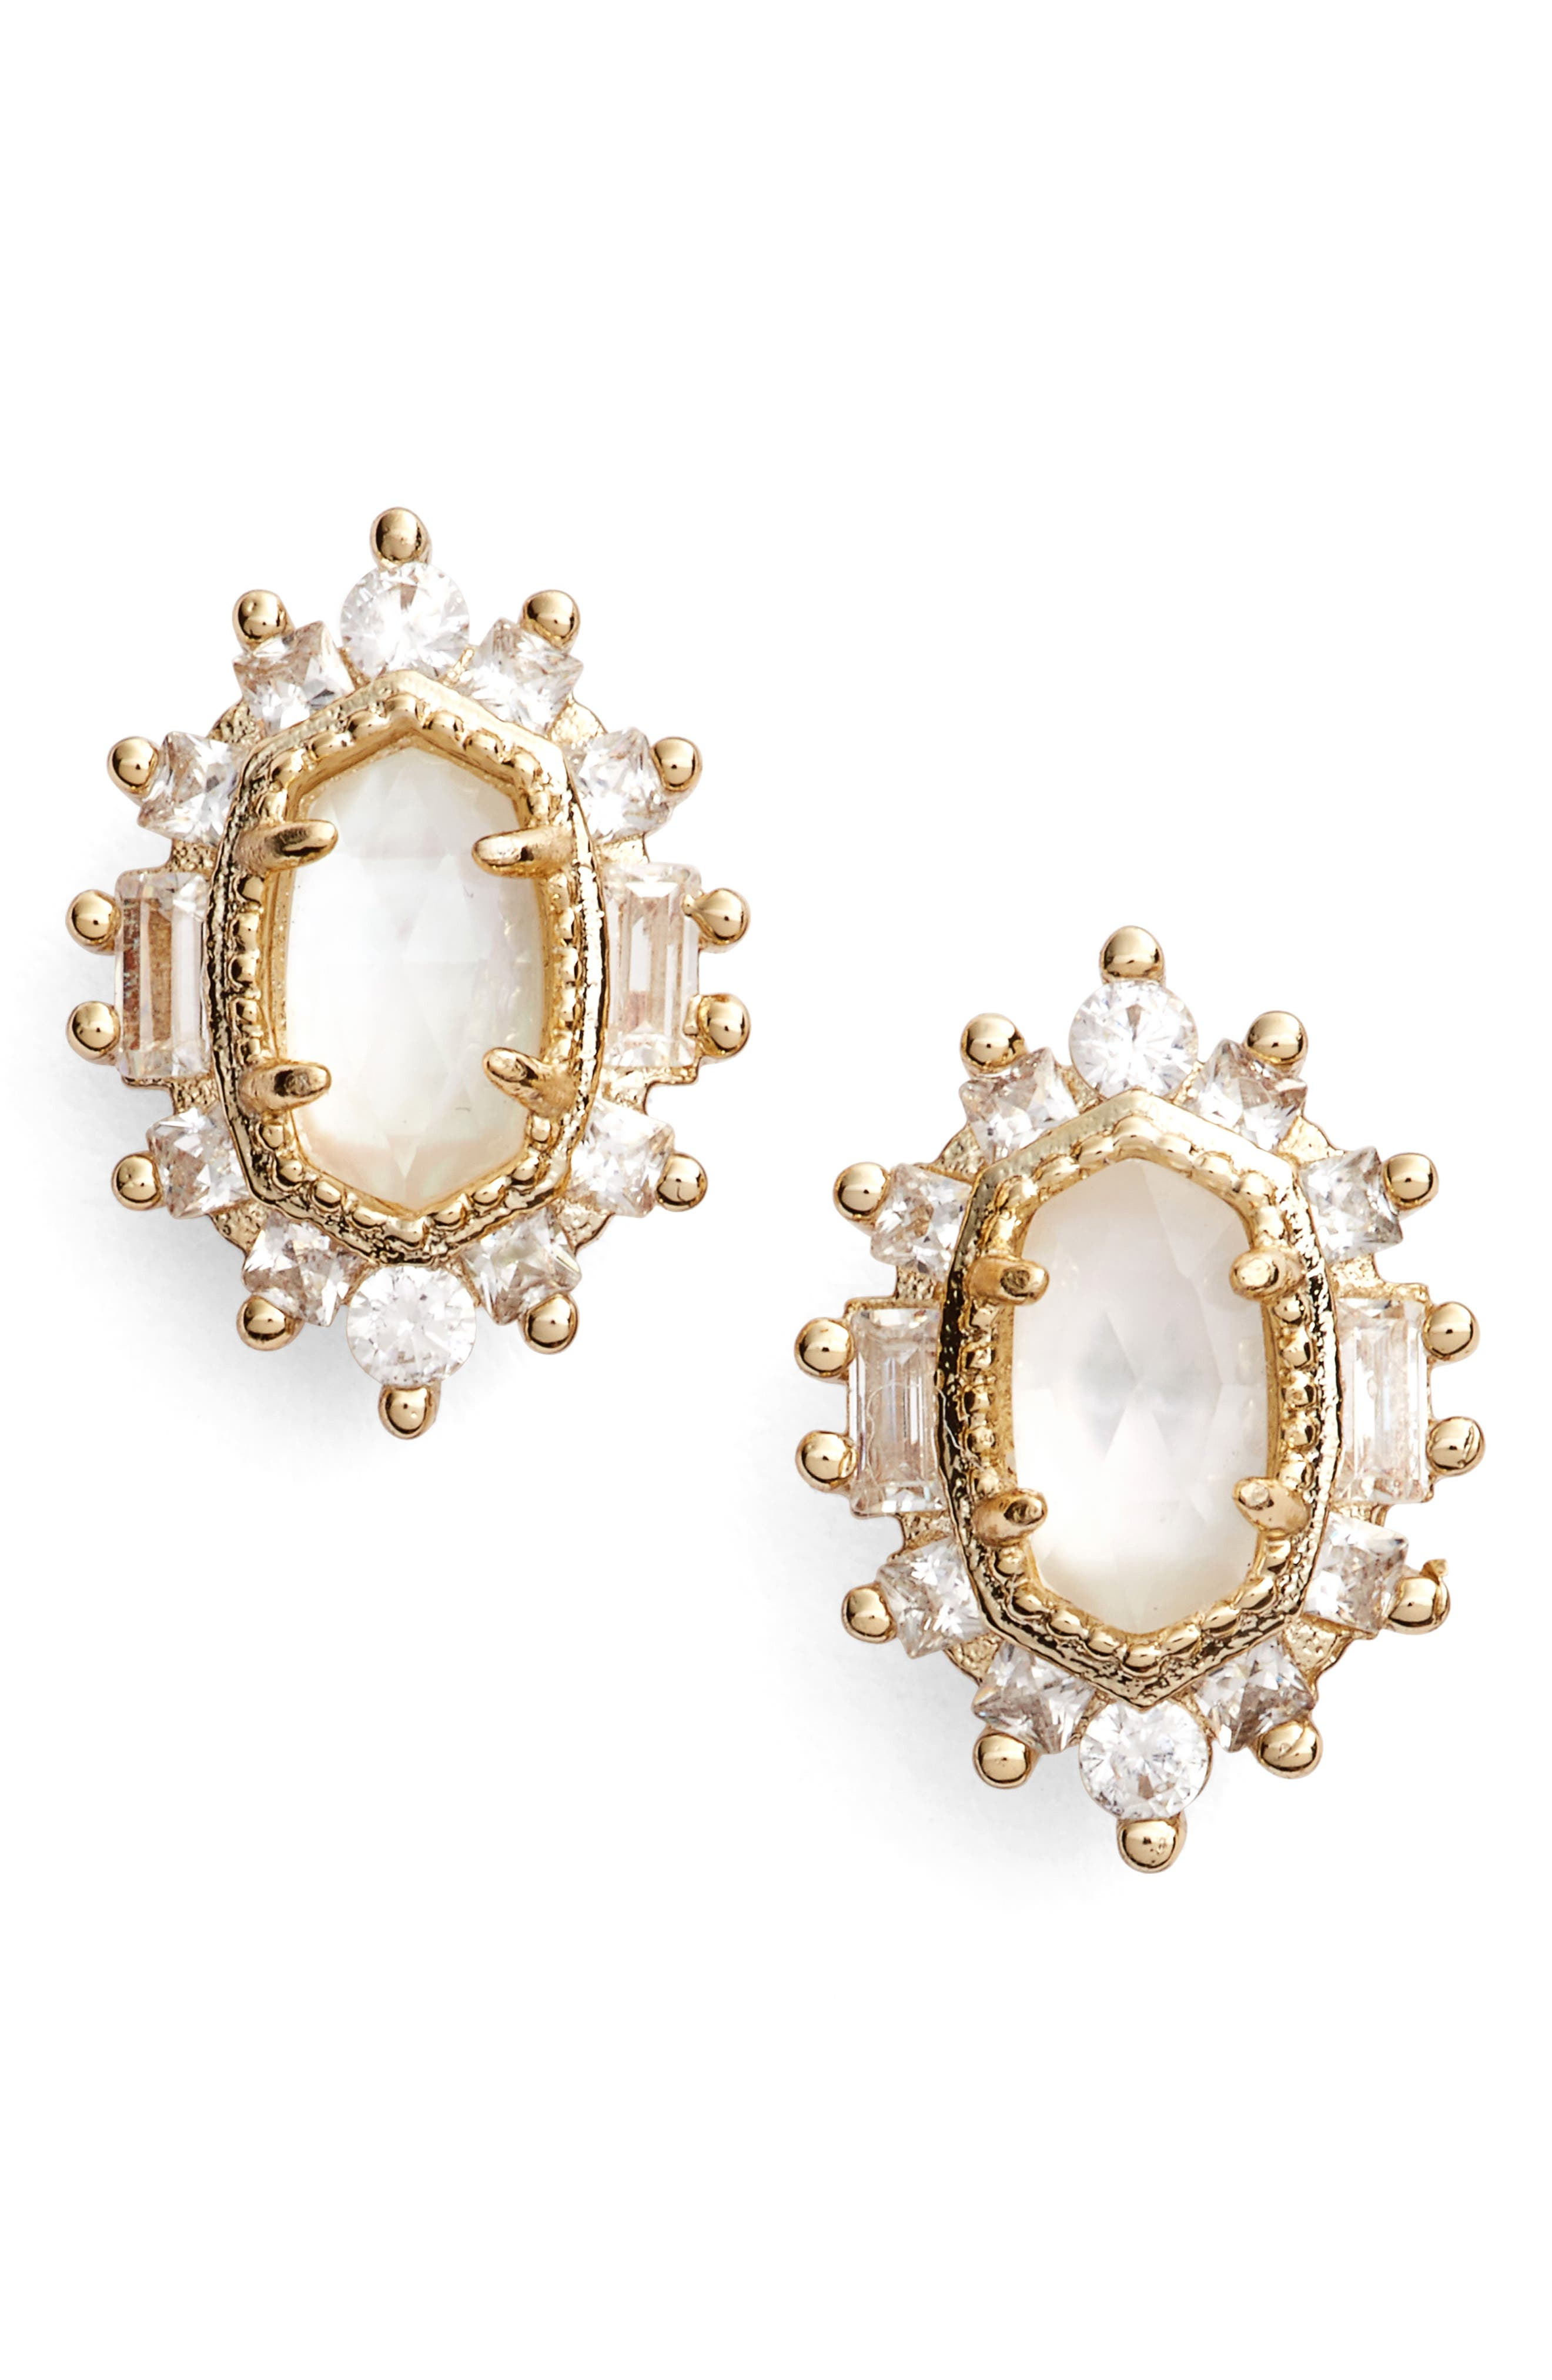 Main Image - Kendra Scott Kaia Stud Earrings